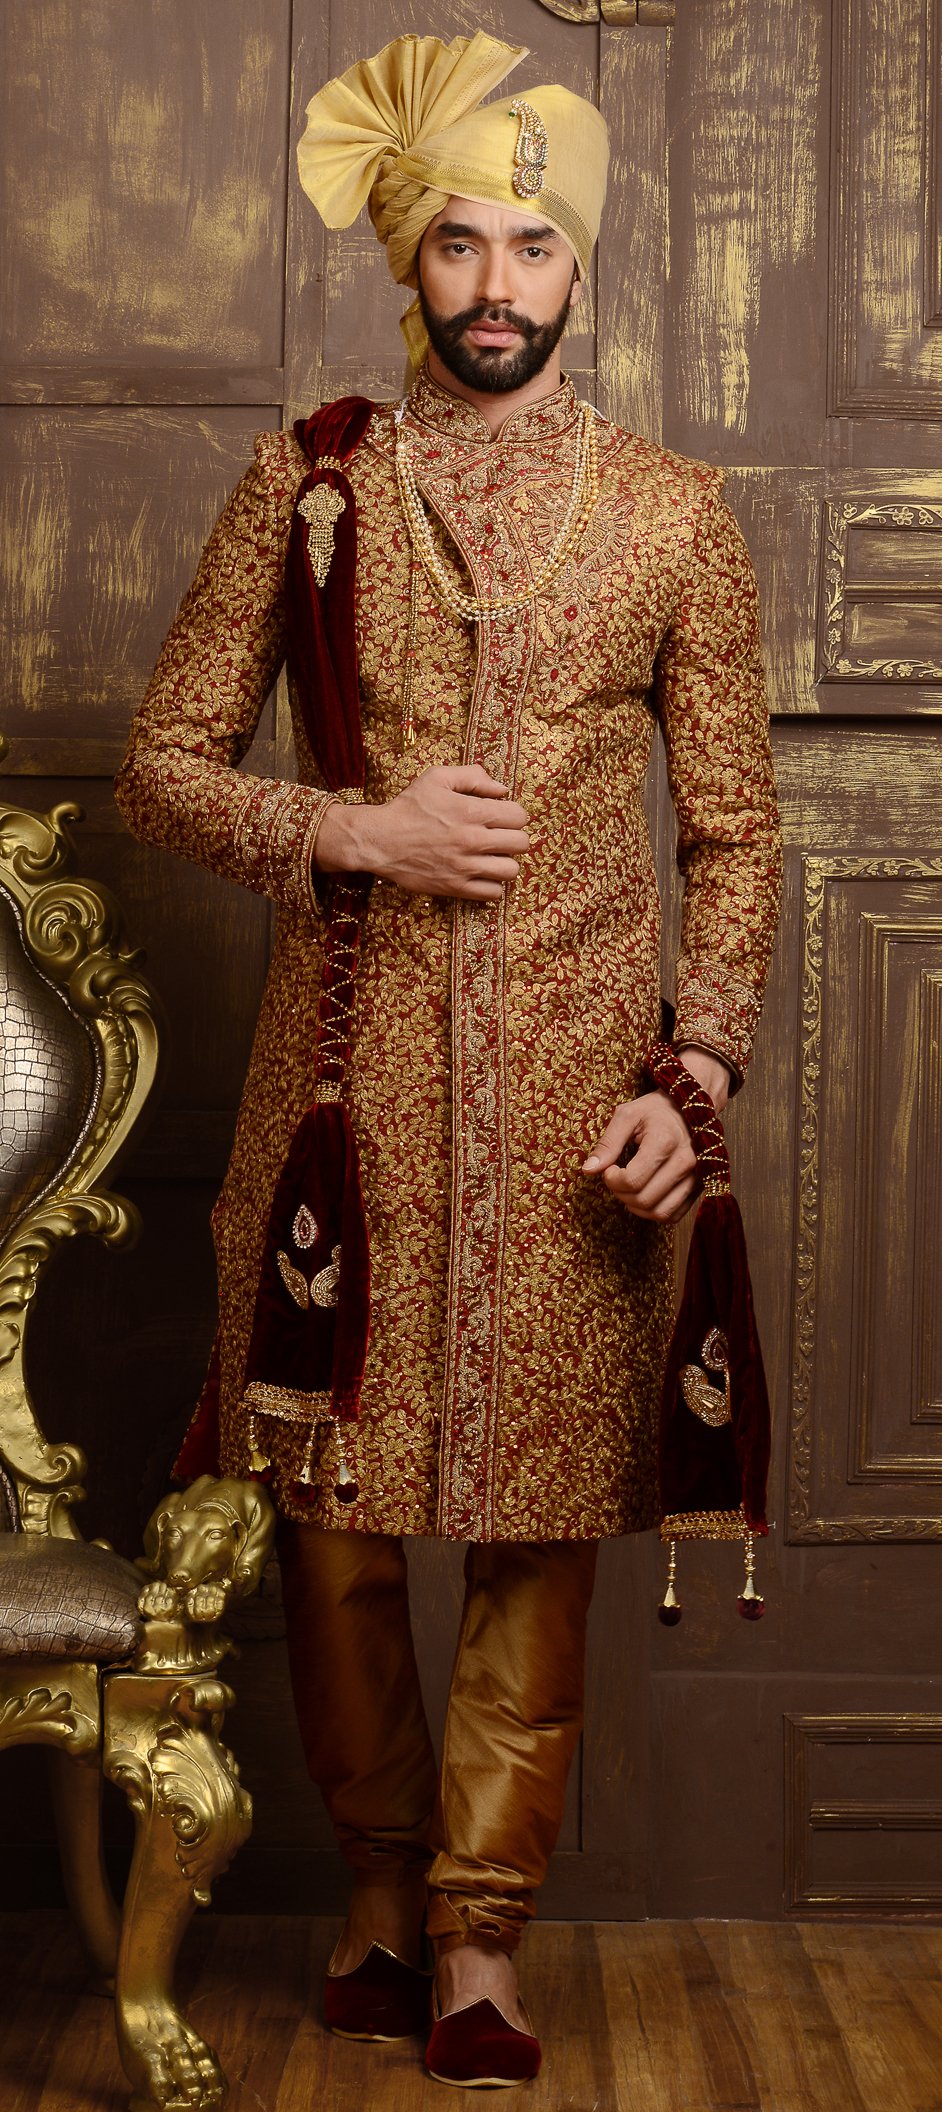 WHY ARE WEDDING SHERWANIS THE HOT FAVOURITE AMONGST THE MEN?